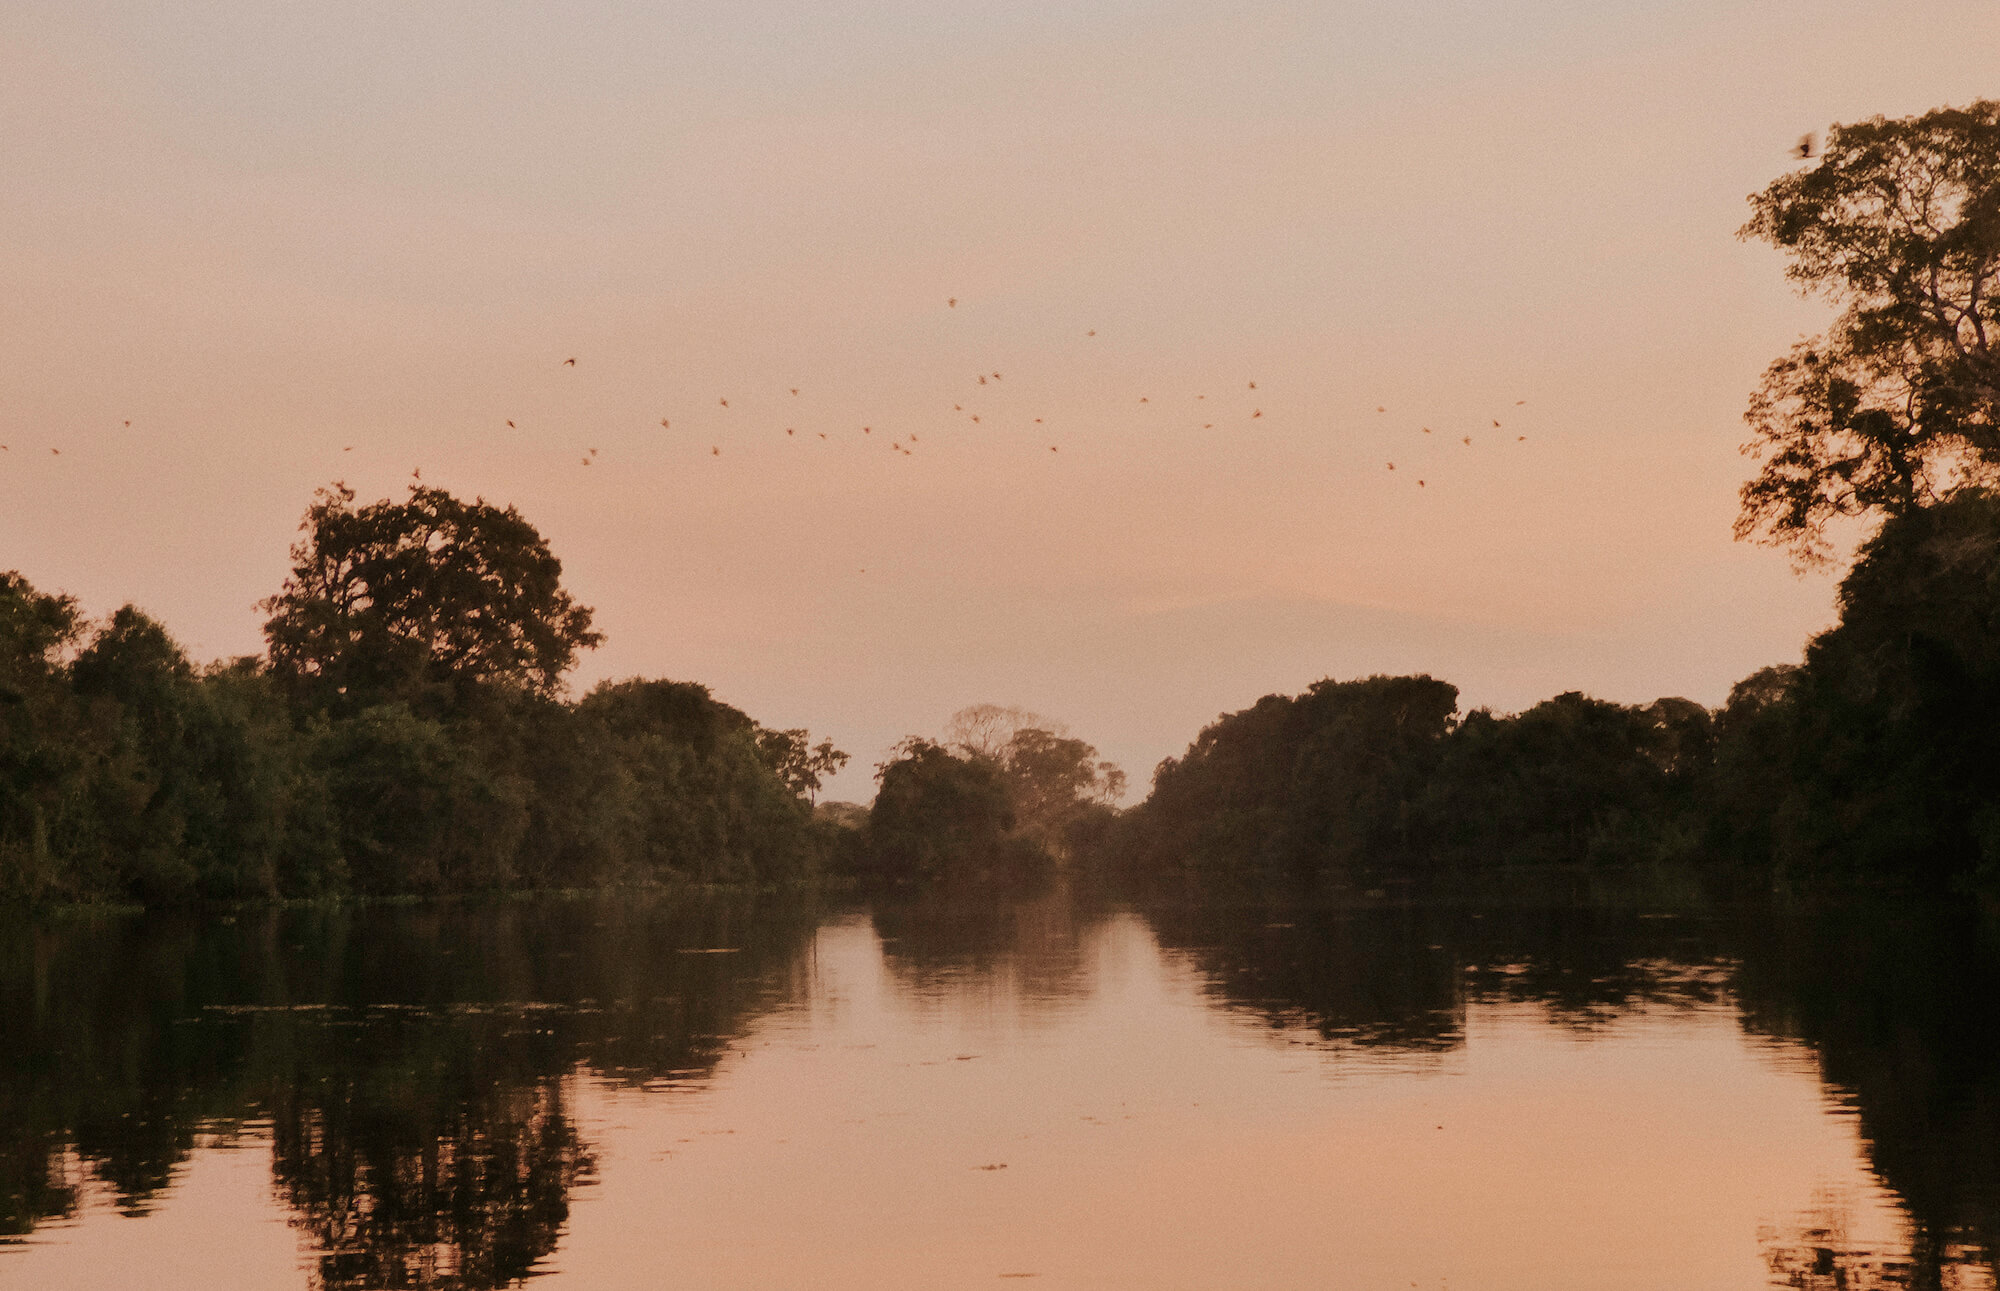 Kayaking the Pantanal during our 3 week trip through Brazil